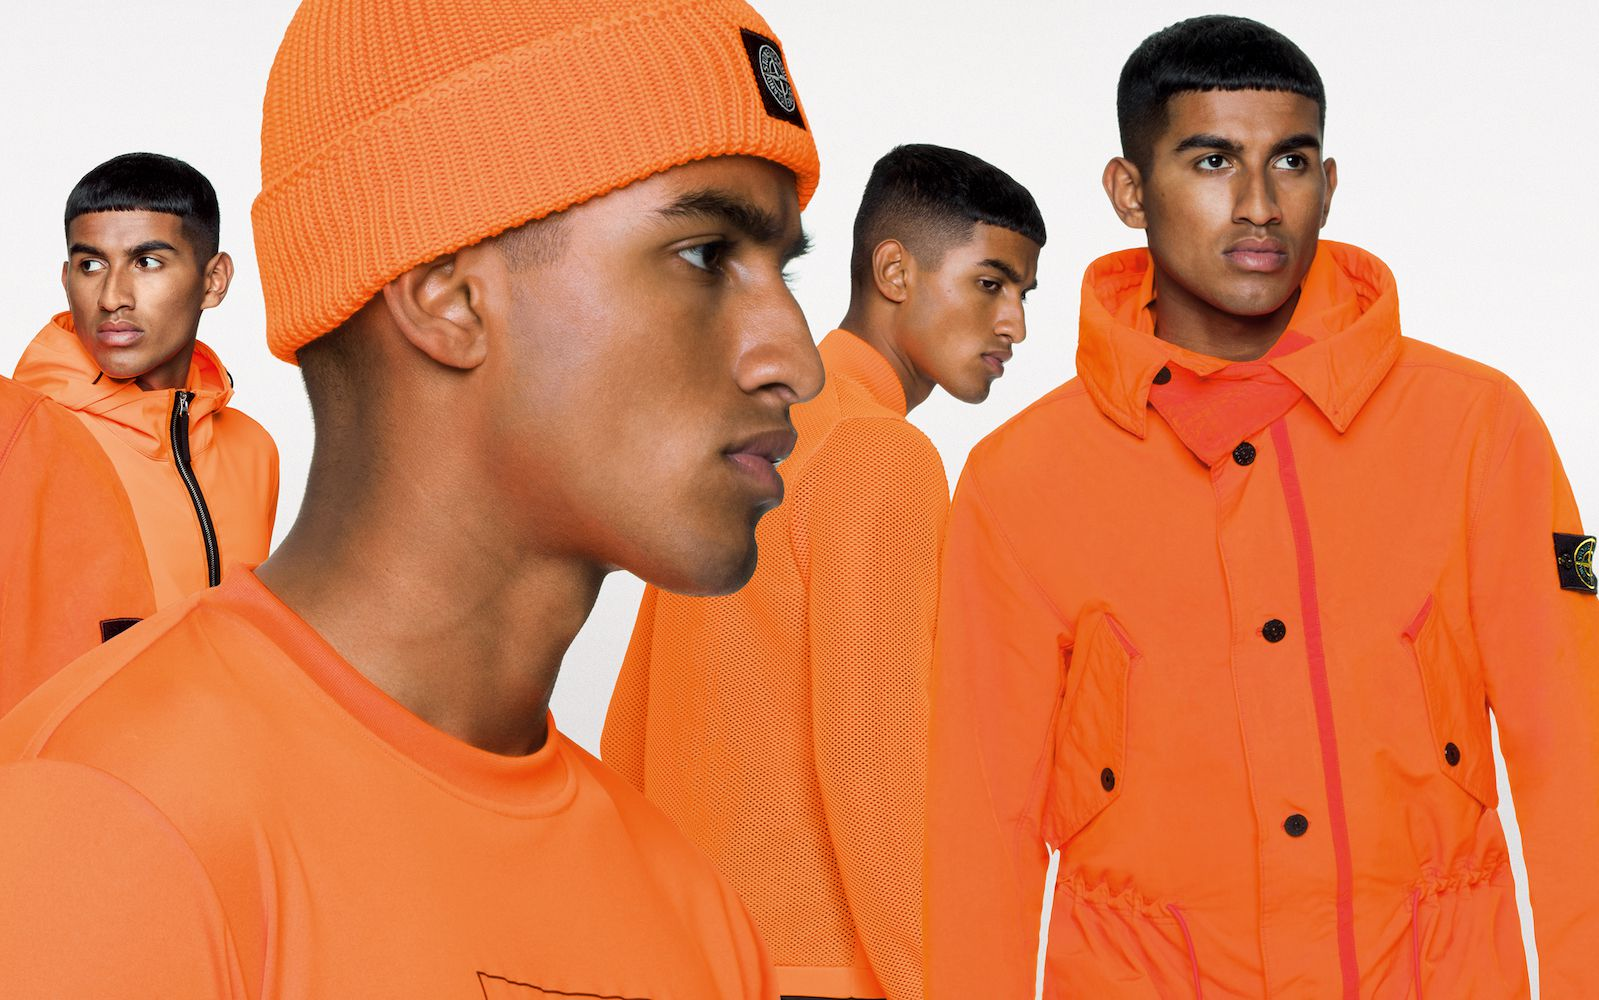 Stone Island Releases New Fluo Orange Range